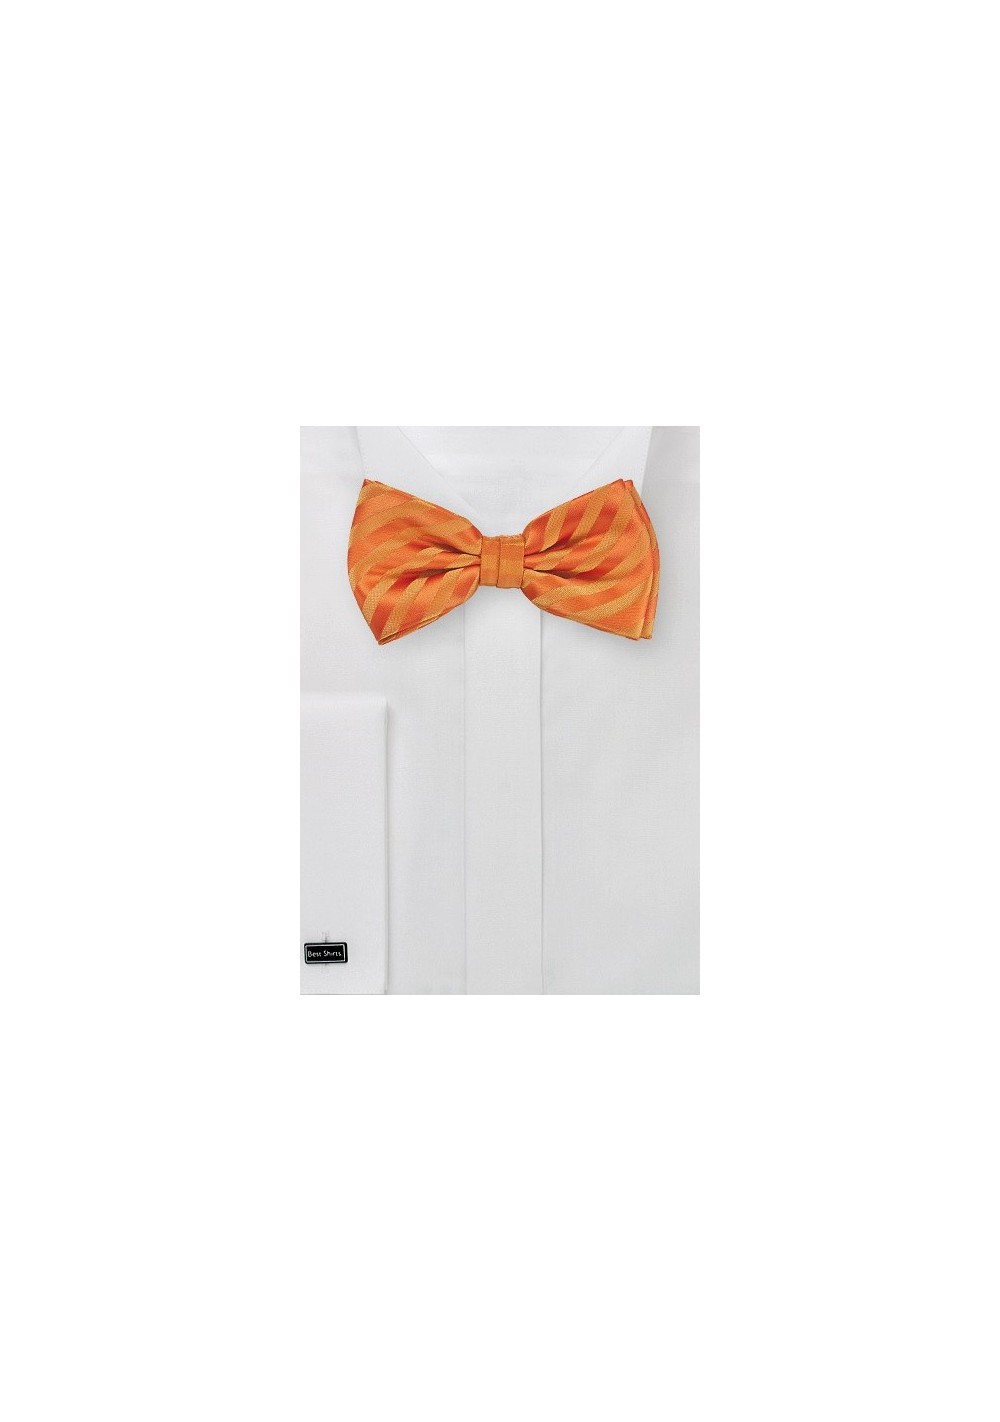 Bright Orange Kids Bow Tie with Stripes